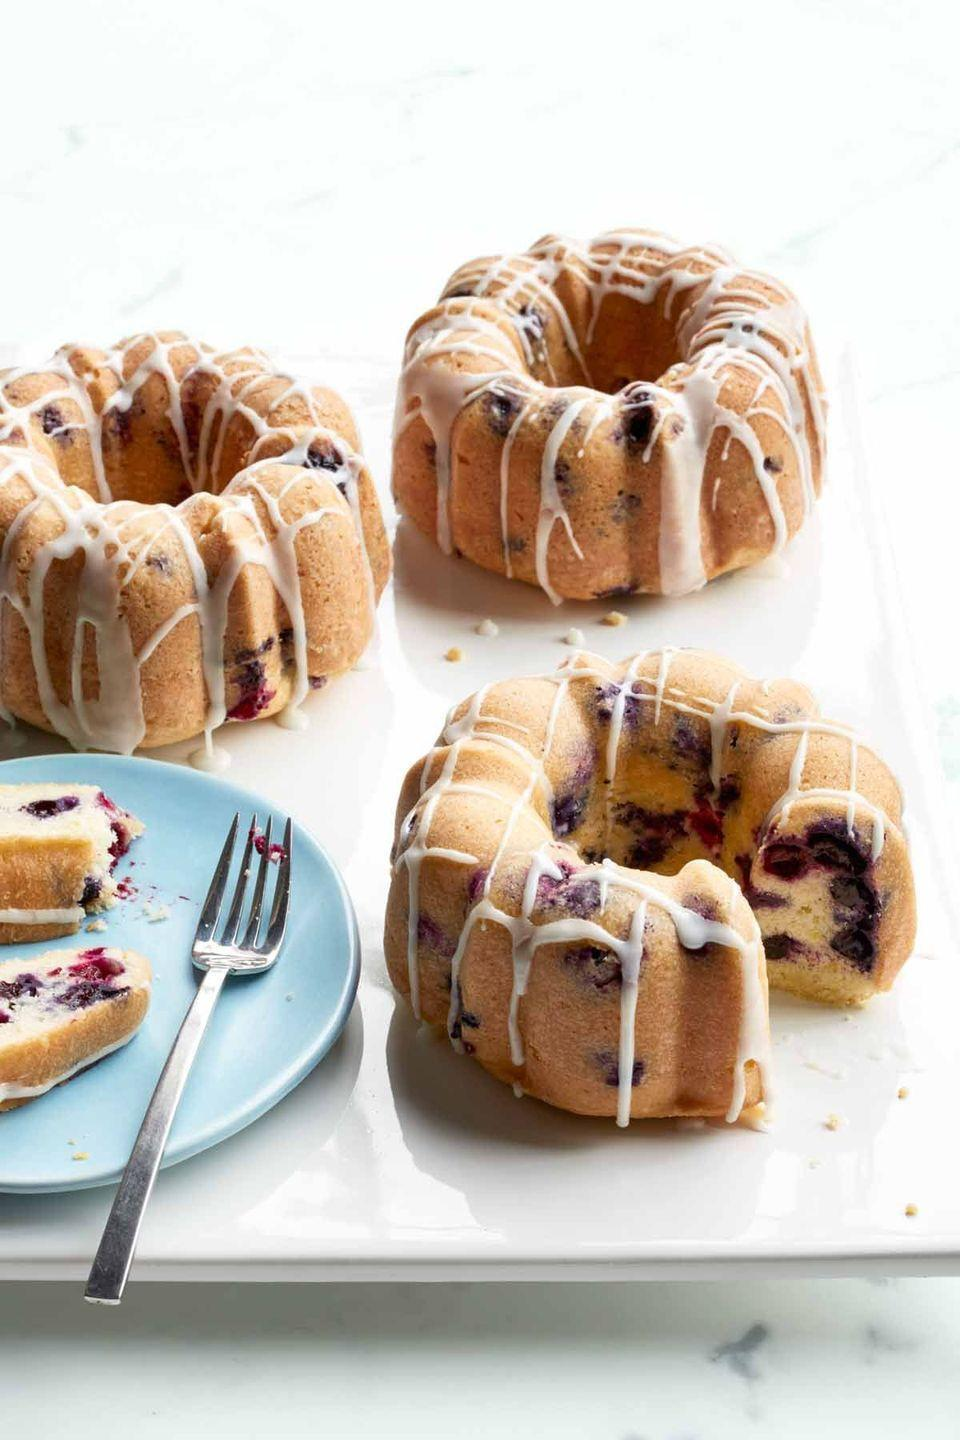 """<p>With this recipe, you can either make four tiny bundt cakes or a full-sized one for the whole family to enjoy.</p><p><em><strong><a href=""""https://www.womansday.com/food-recipes/food-drinks/recipes/a50261/mini-lemon-blueberry-bundt-cakes-recipe-wdy0515/"""" rel=""""nofollow noopener"""" target=""""_blank"""" data-ylk=""""slk:Get the Mini Lemon Berry Bundt Cakes recipe."""" class=""""link rapid-noclick-resp"""">Get the Mini Lemon Berry Bundt Cakes recipe.</a></strong></em></p>"""